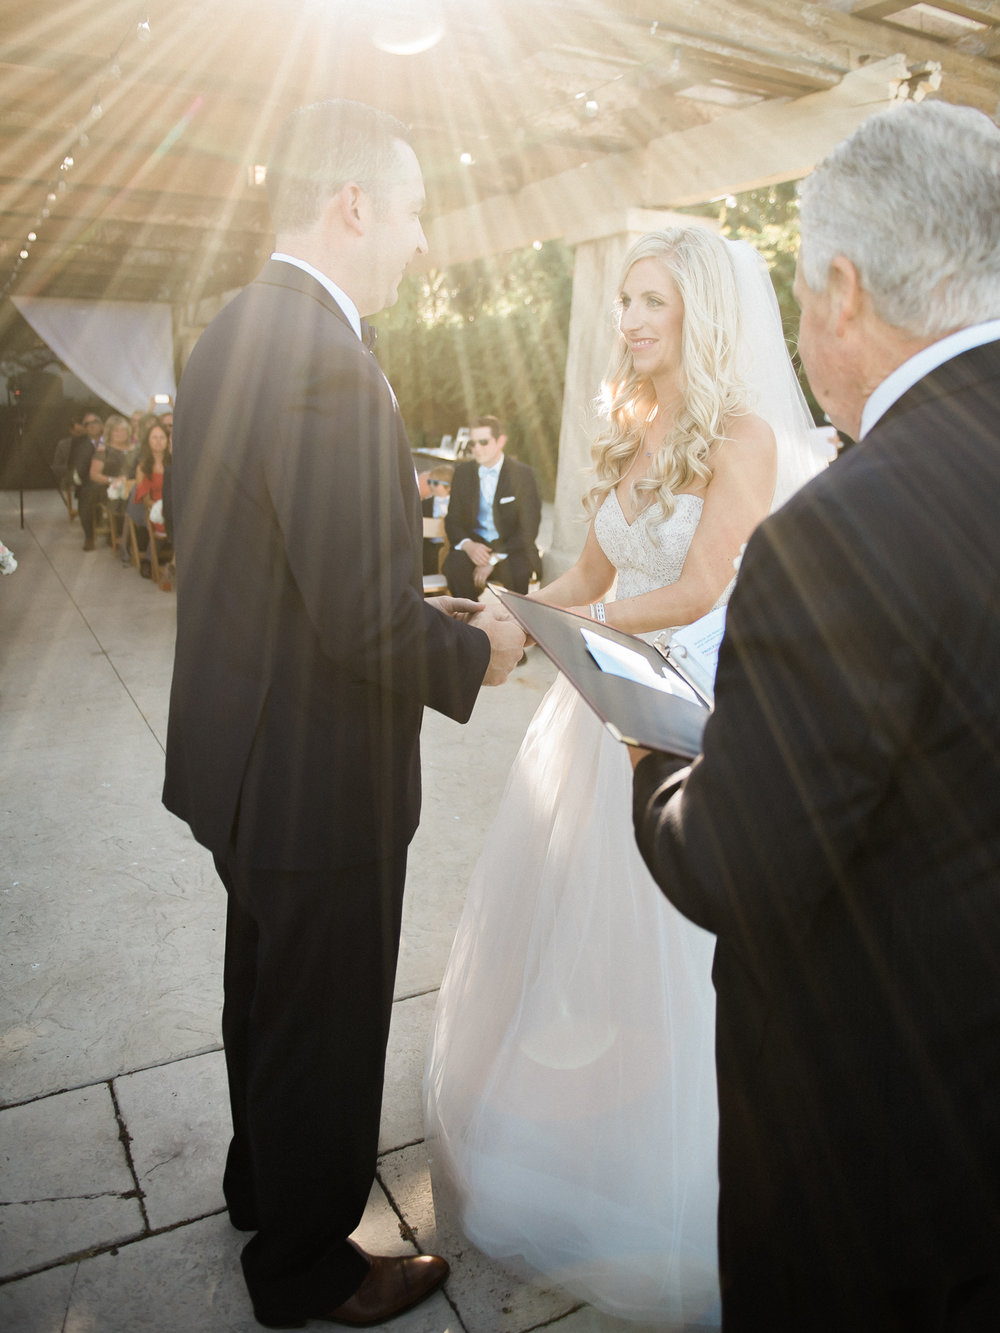 Aimee+Logan_wedding_spp-102.jpg